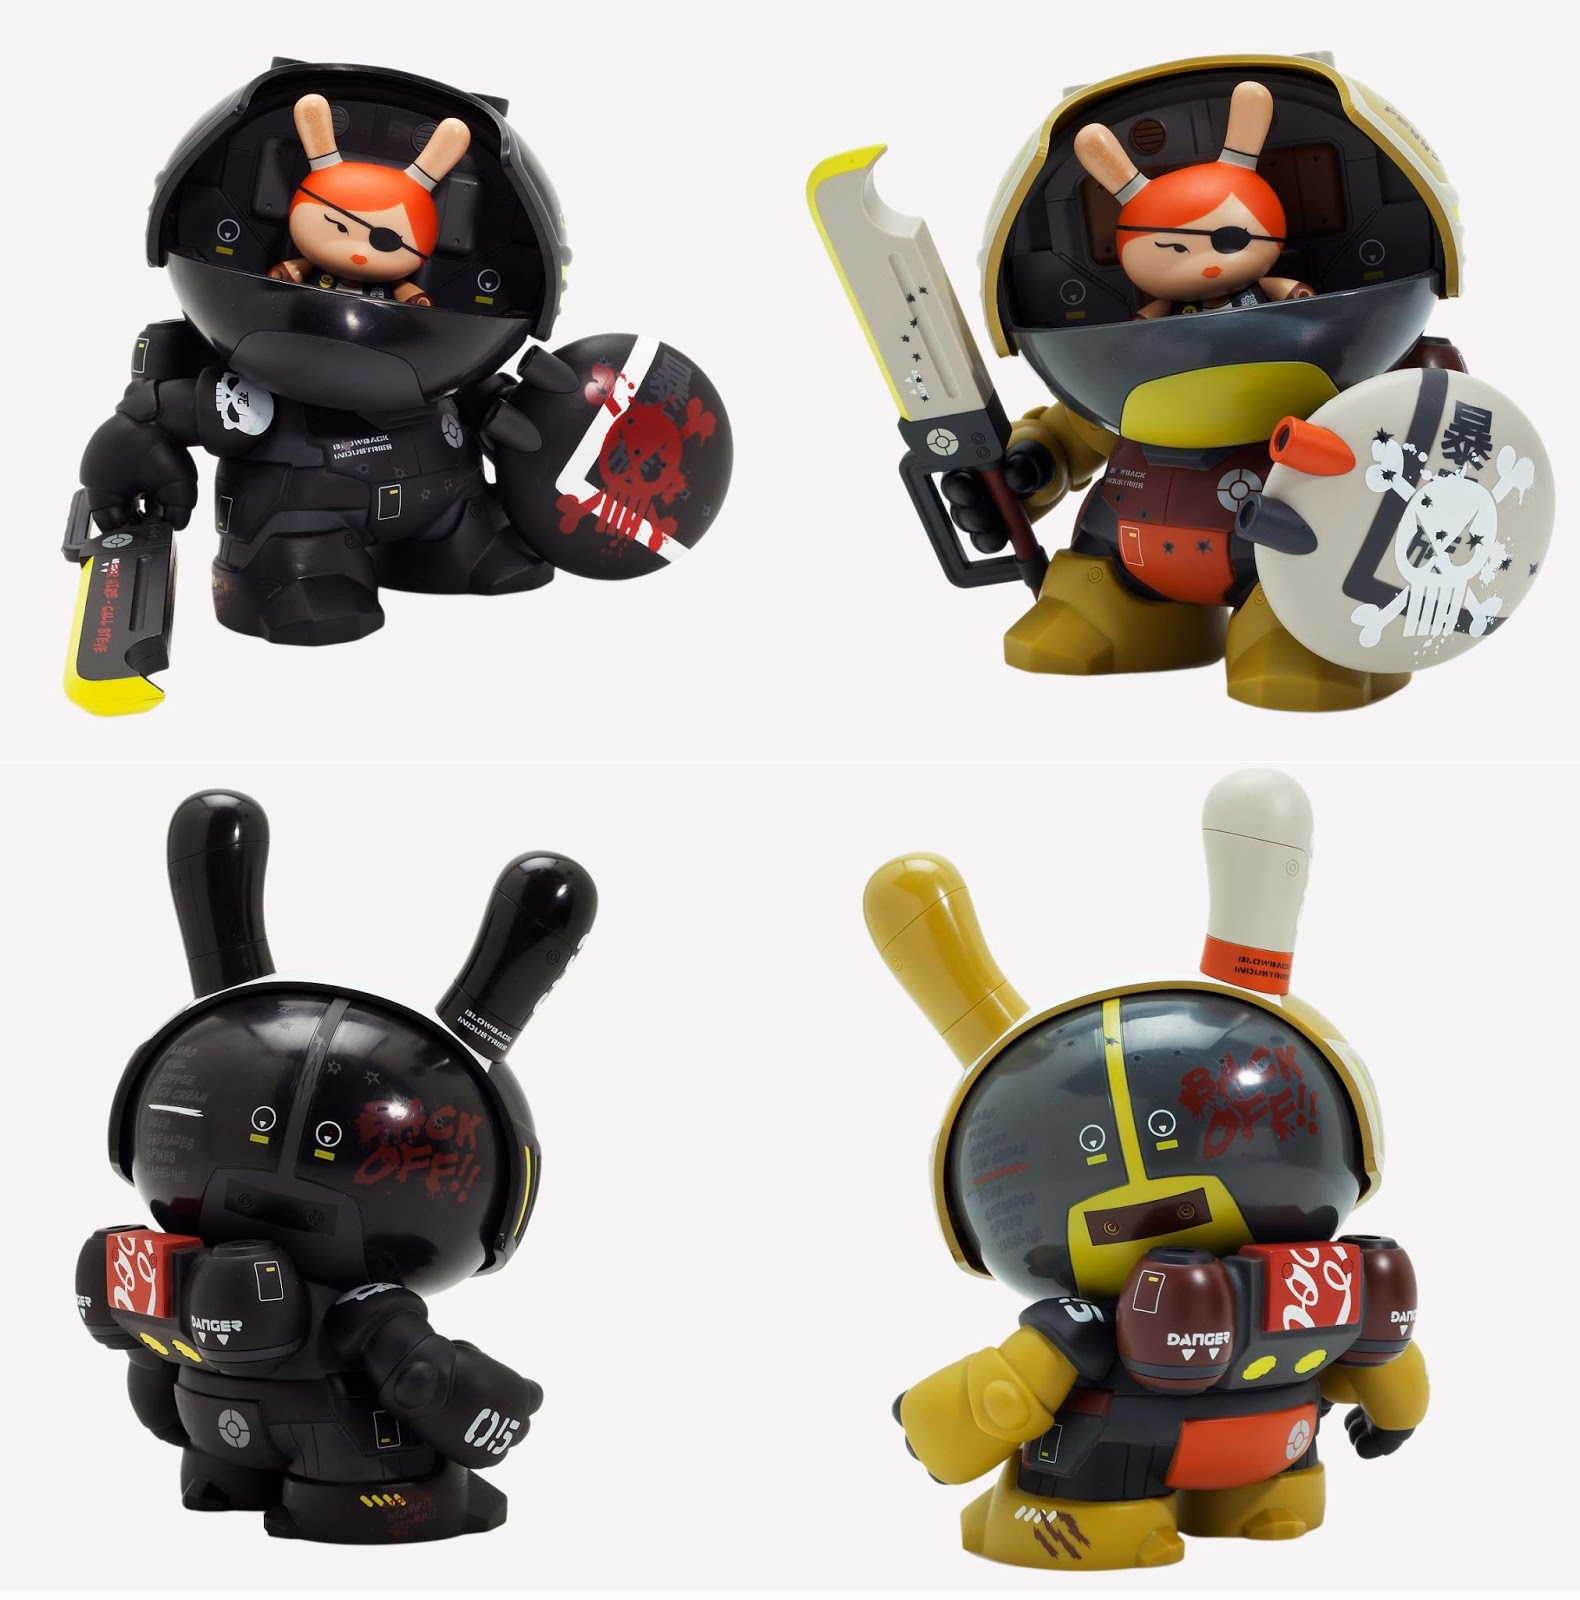 Penelope McStompsalot 8 Inch Dunny Vinyl Figures by Huck Gee - Black & Green Colorways